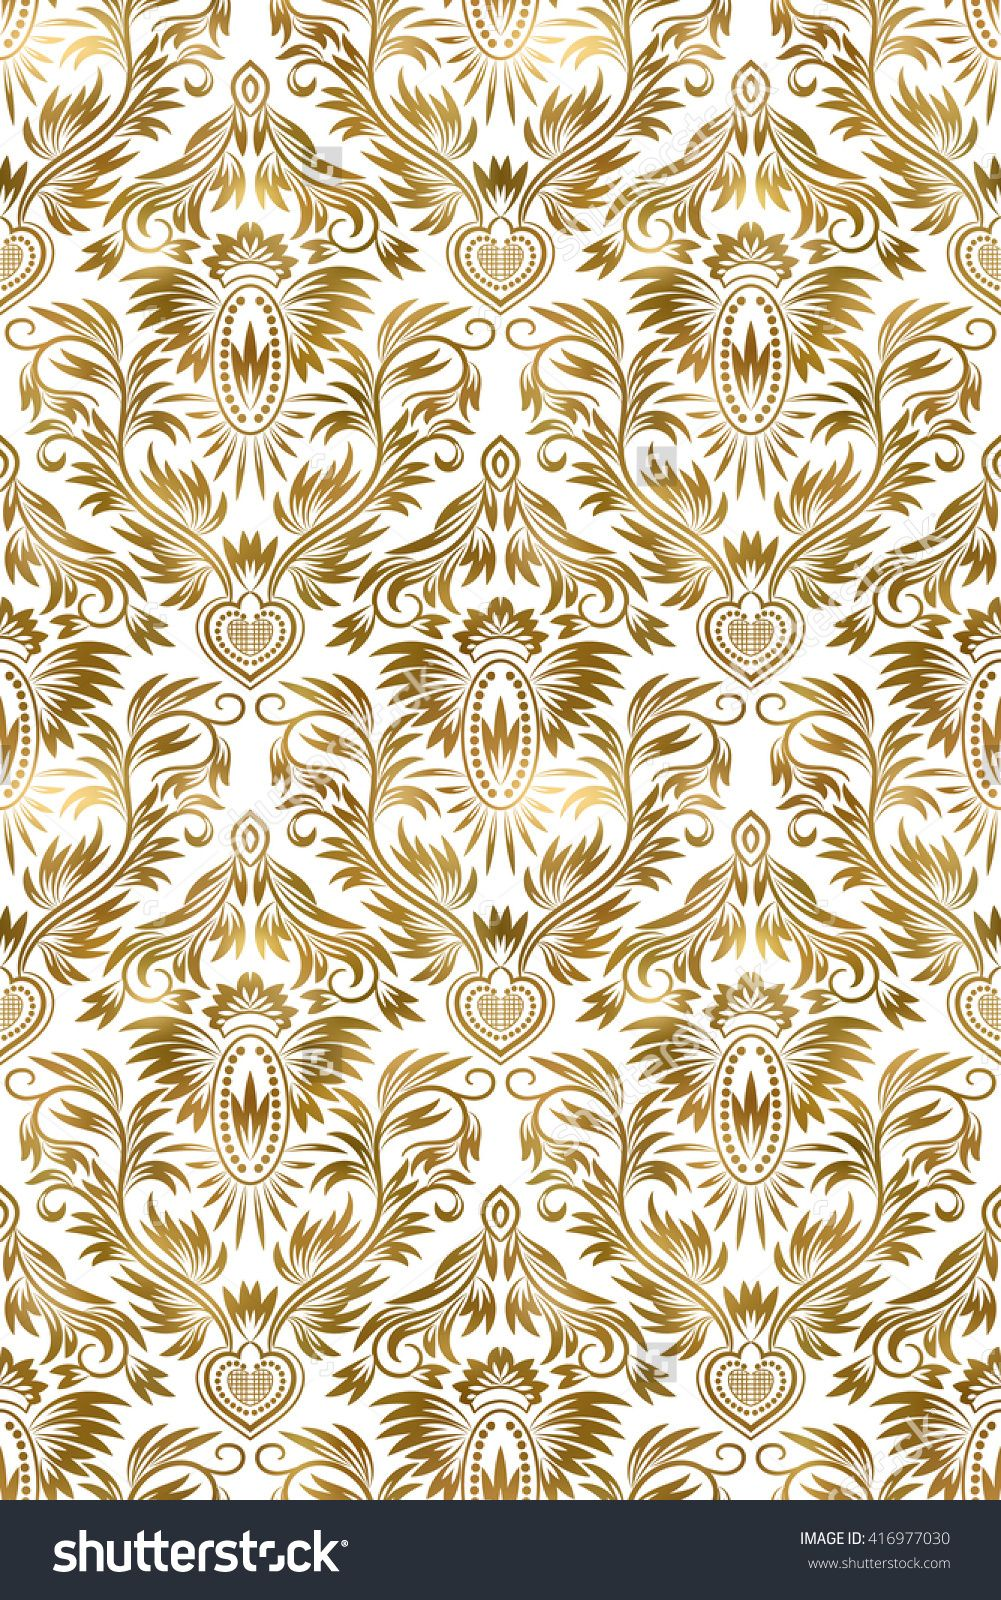 golden white vintage seamless pattern gold royal classic